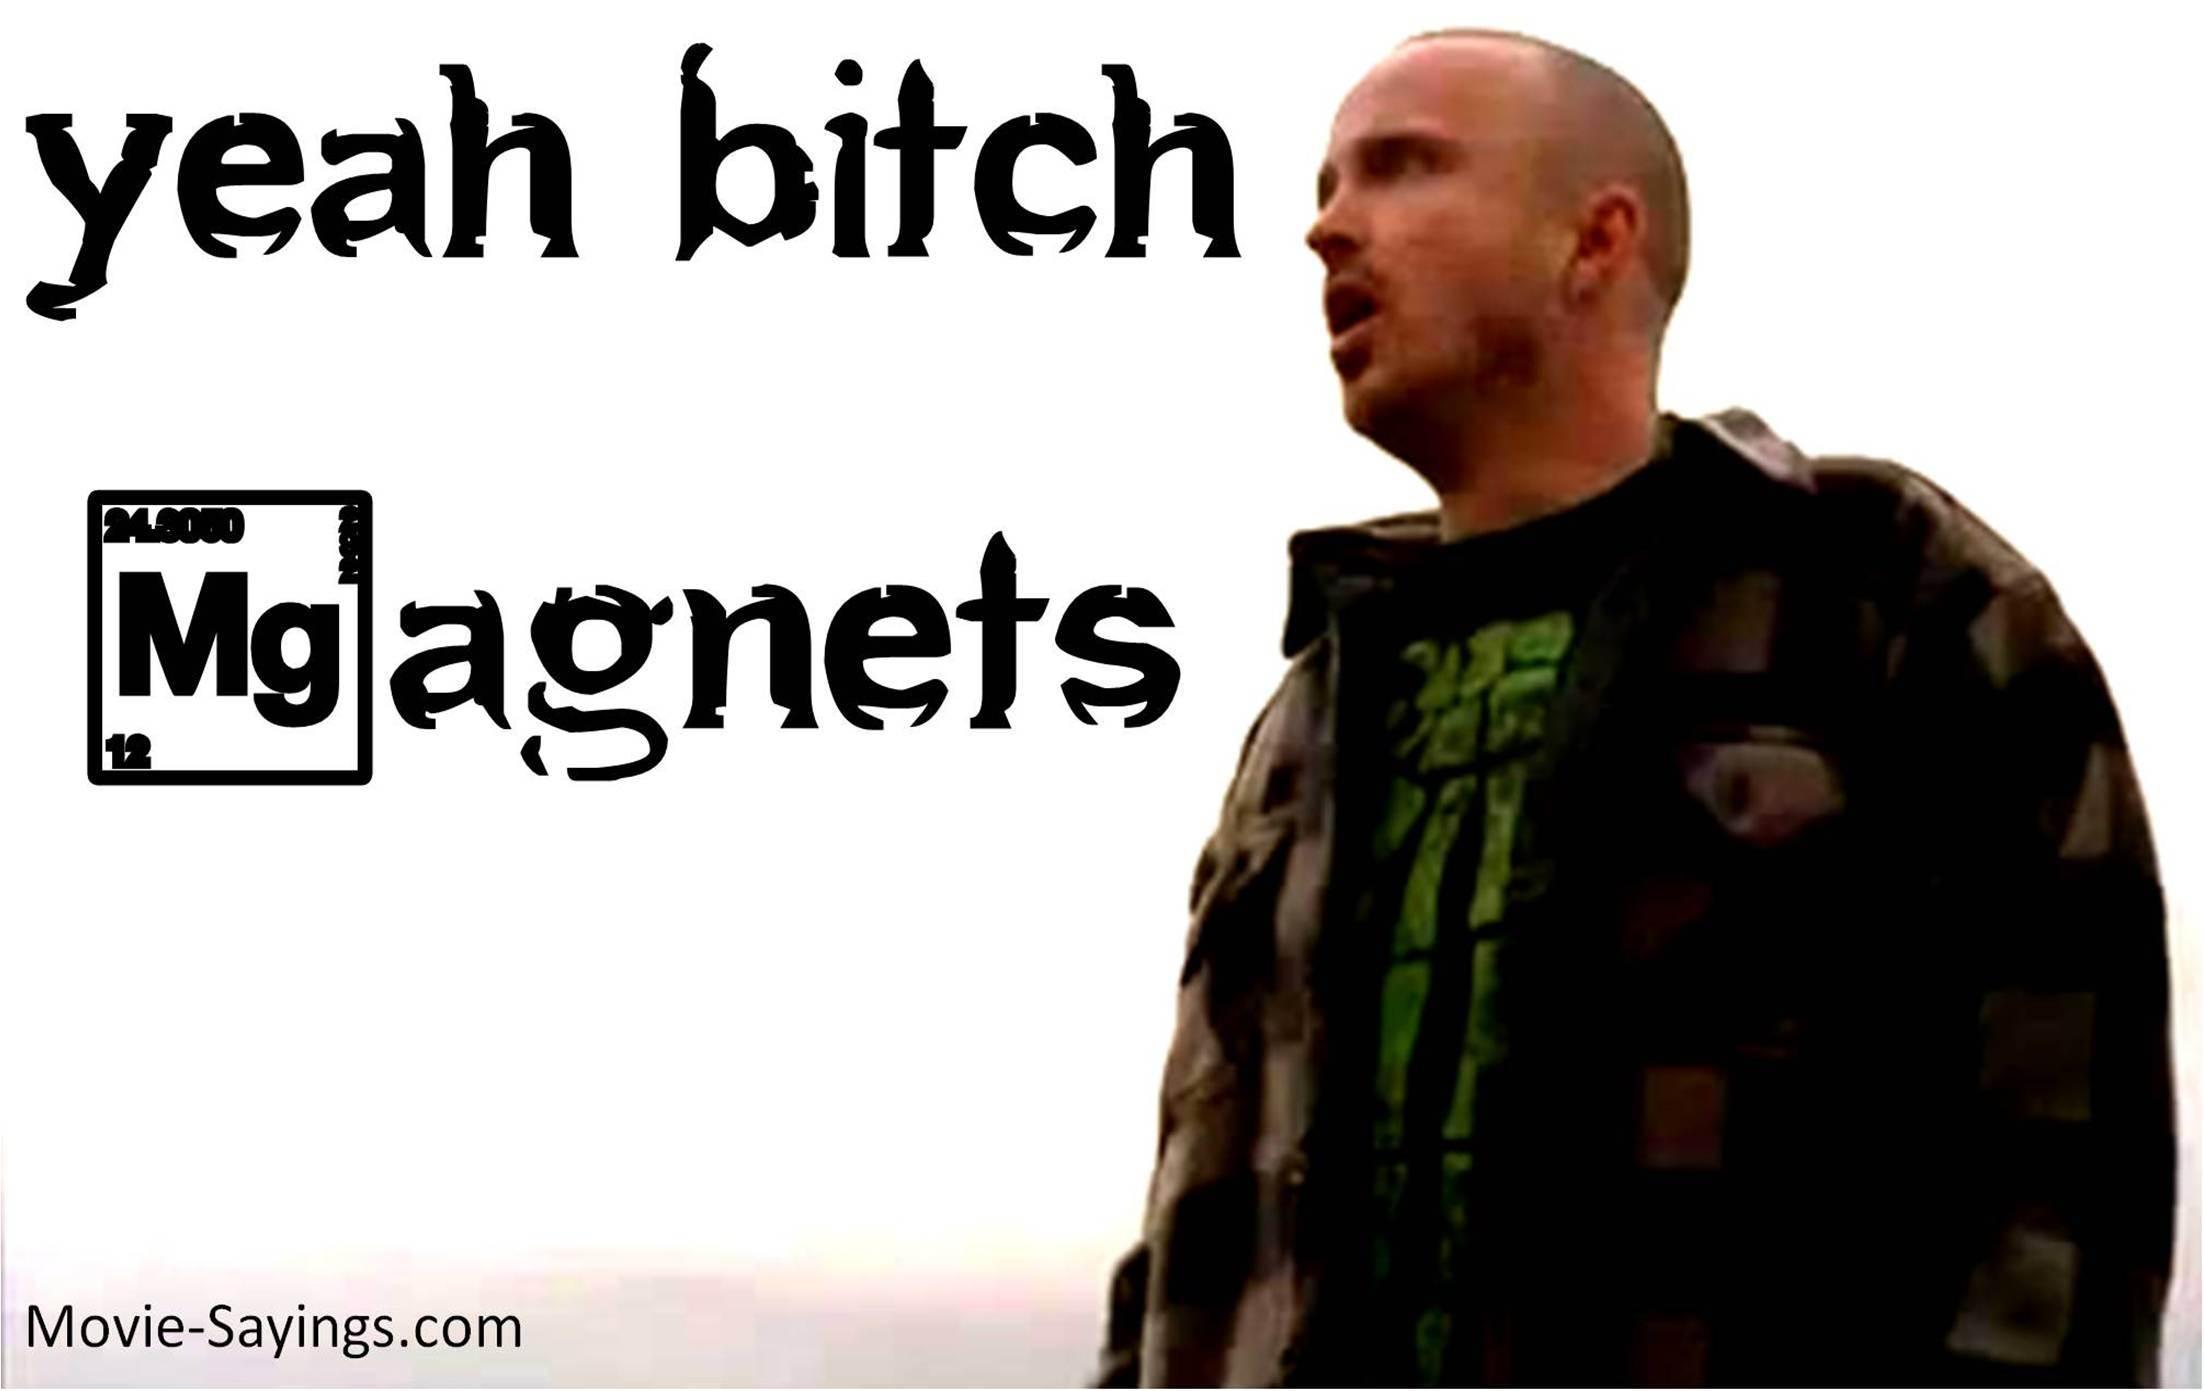 Aaron Paul's quote #4